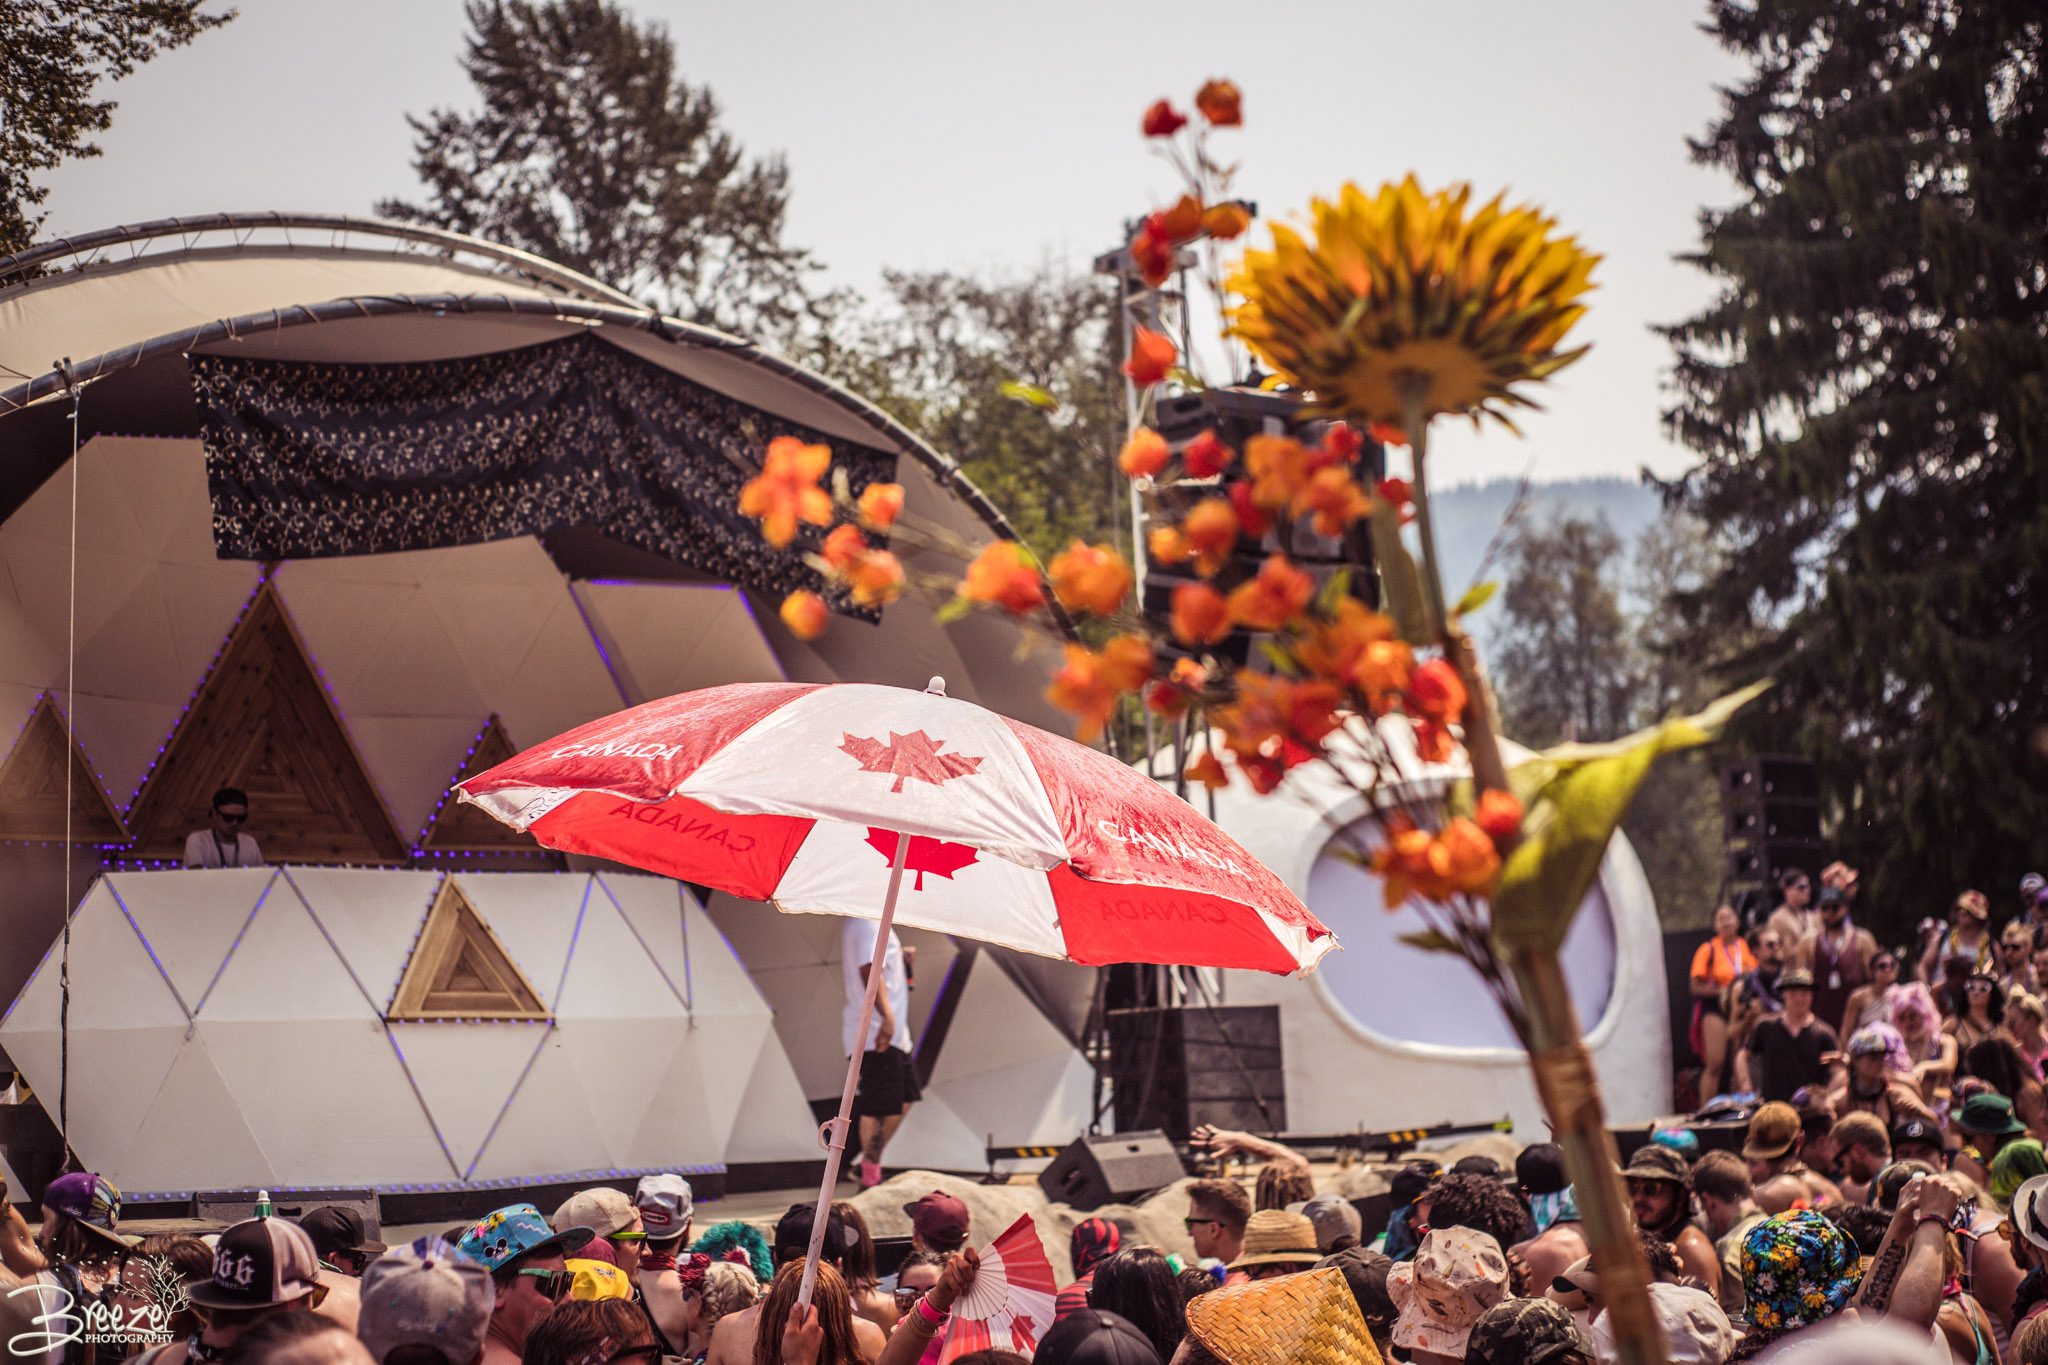 Brie'Ana Breeze Photography & Media - Shambhala 2018-9793.jpg